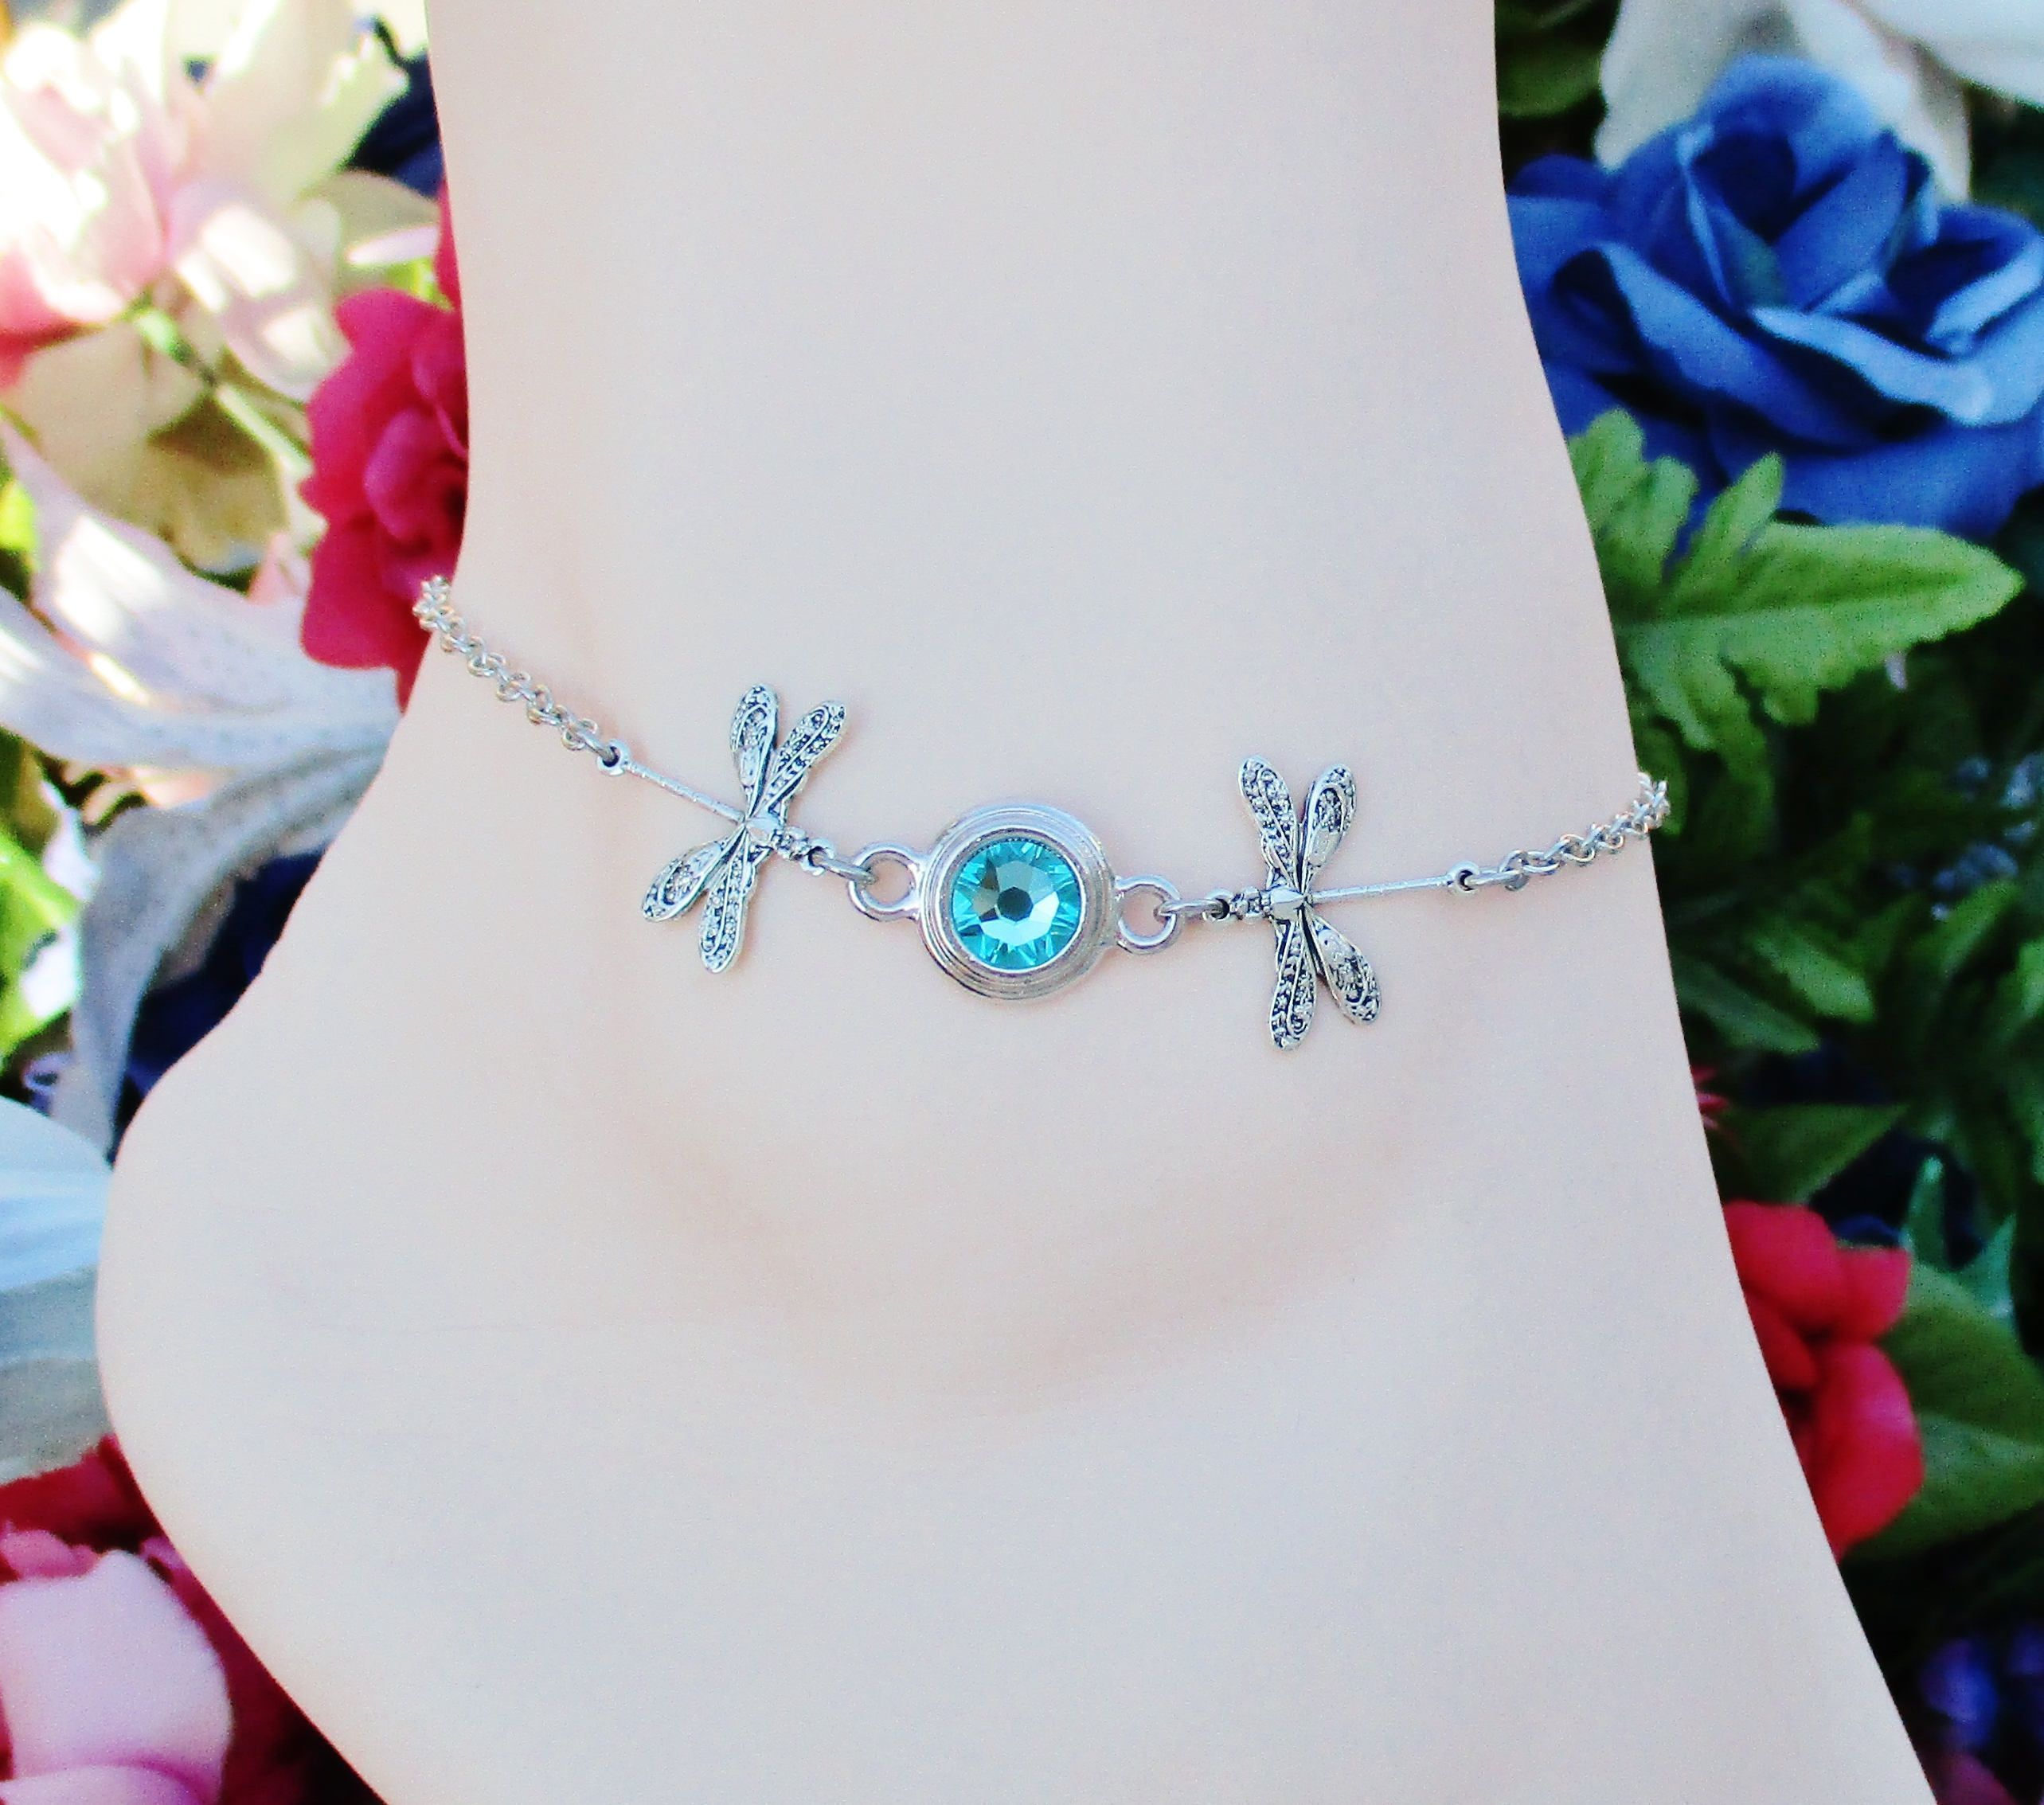 womens fullxfull something jewelry wedding topaz anklets blue for il bracelet ankle gold bride anklet p rose gift